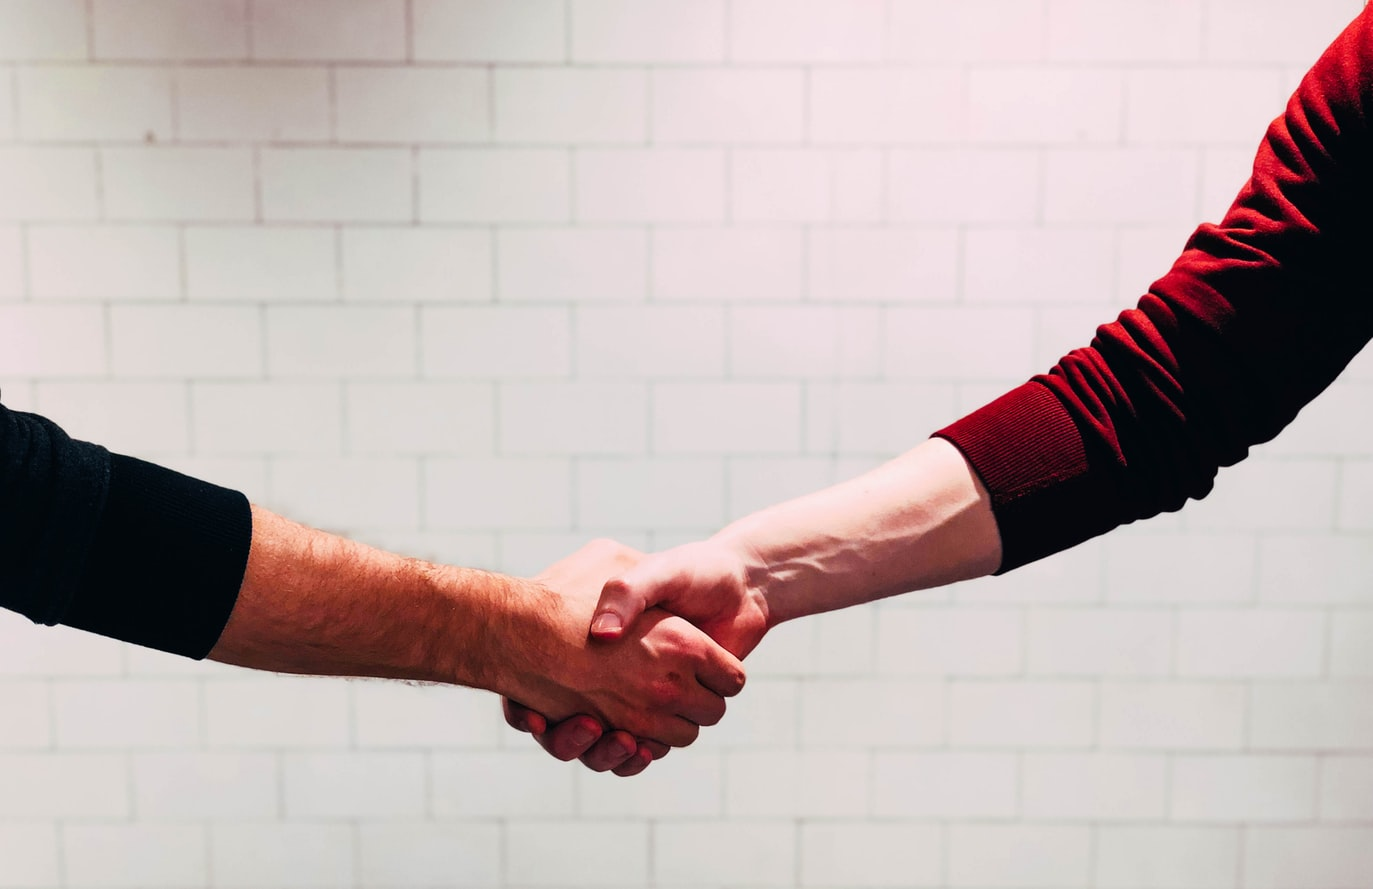 Connect With Clients While Physical Distancing